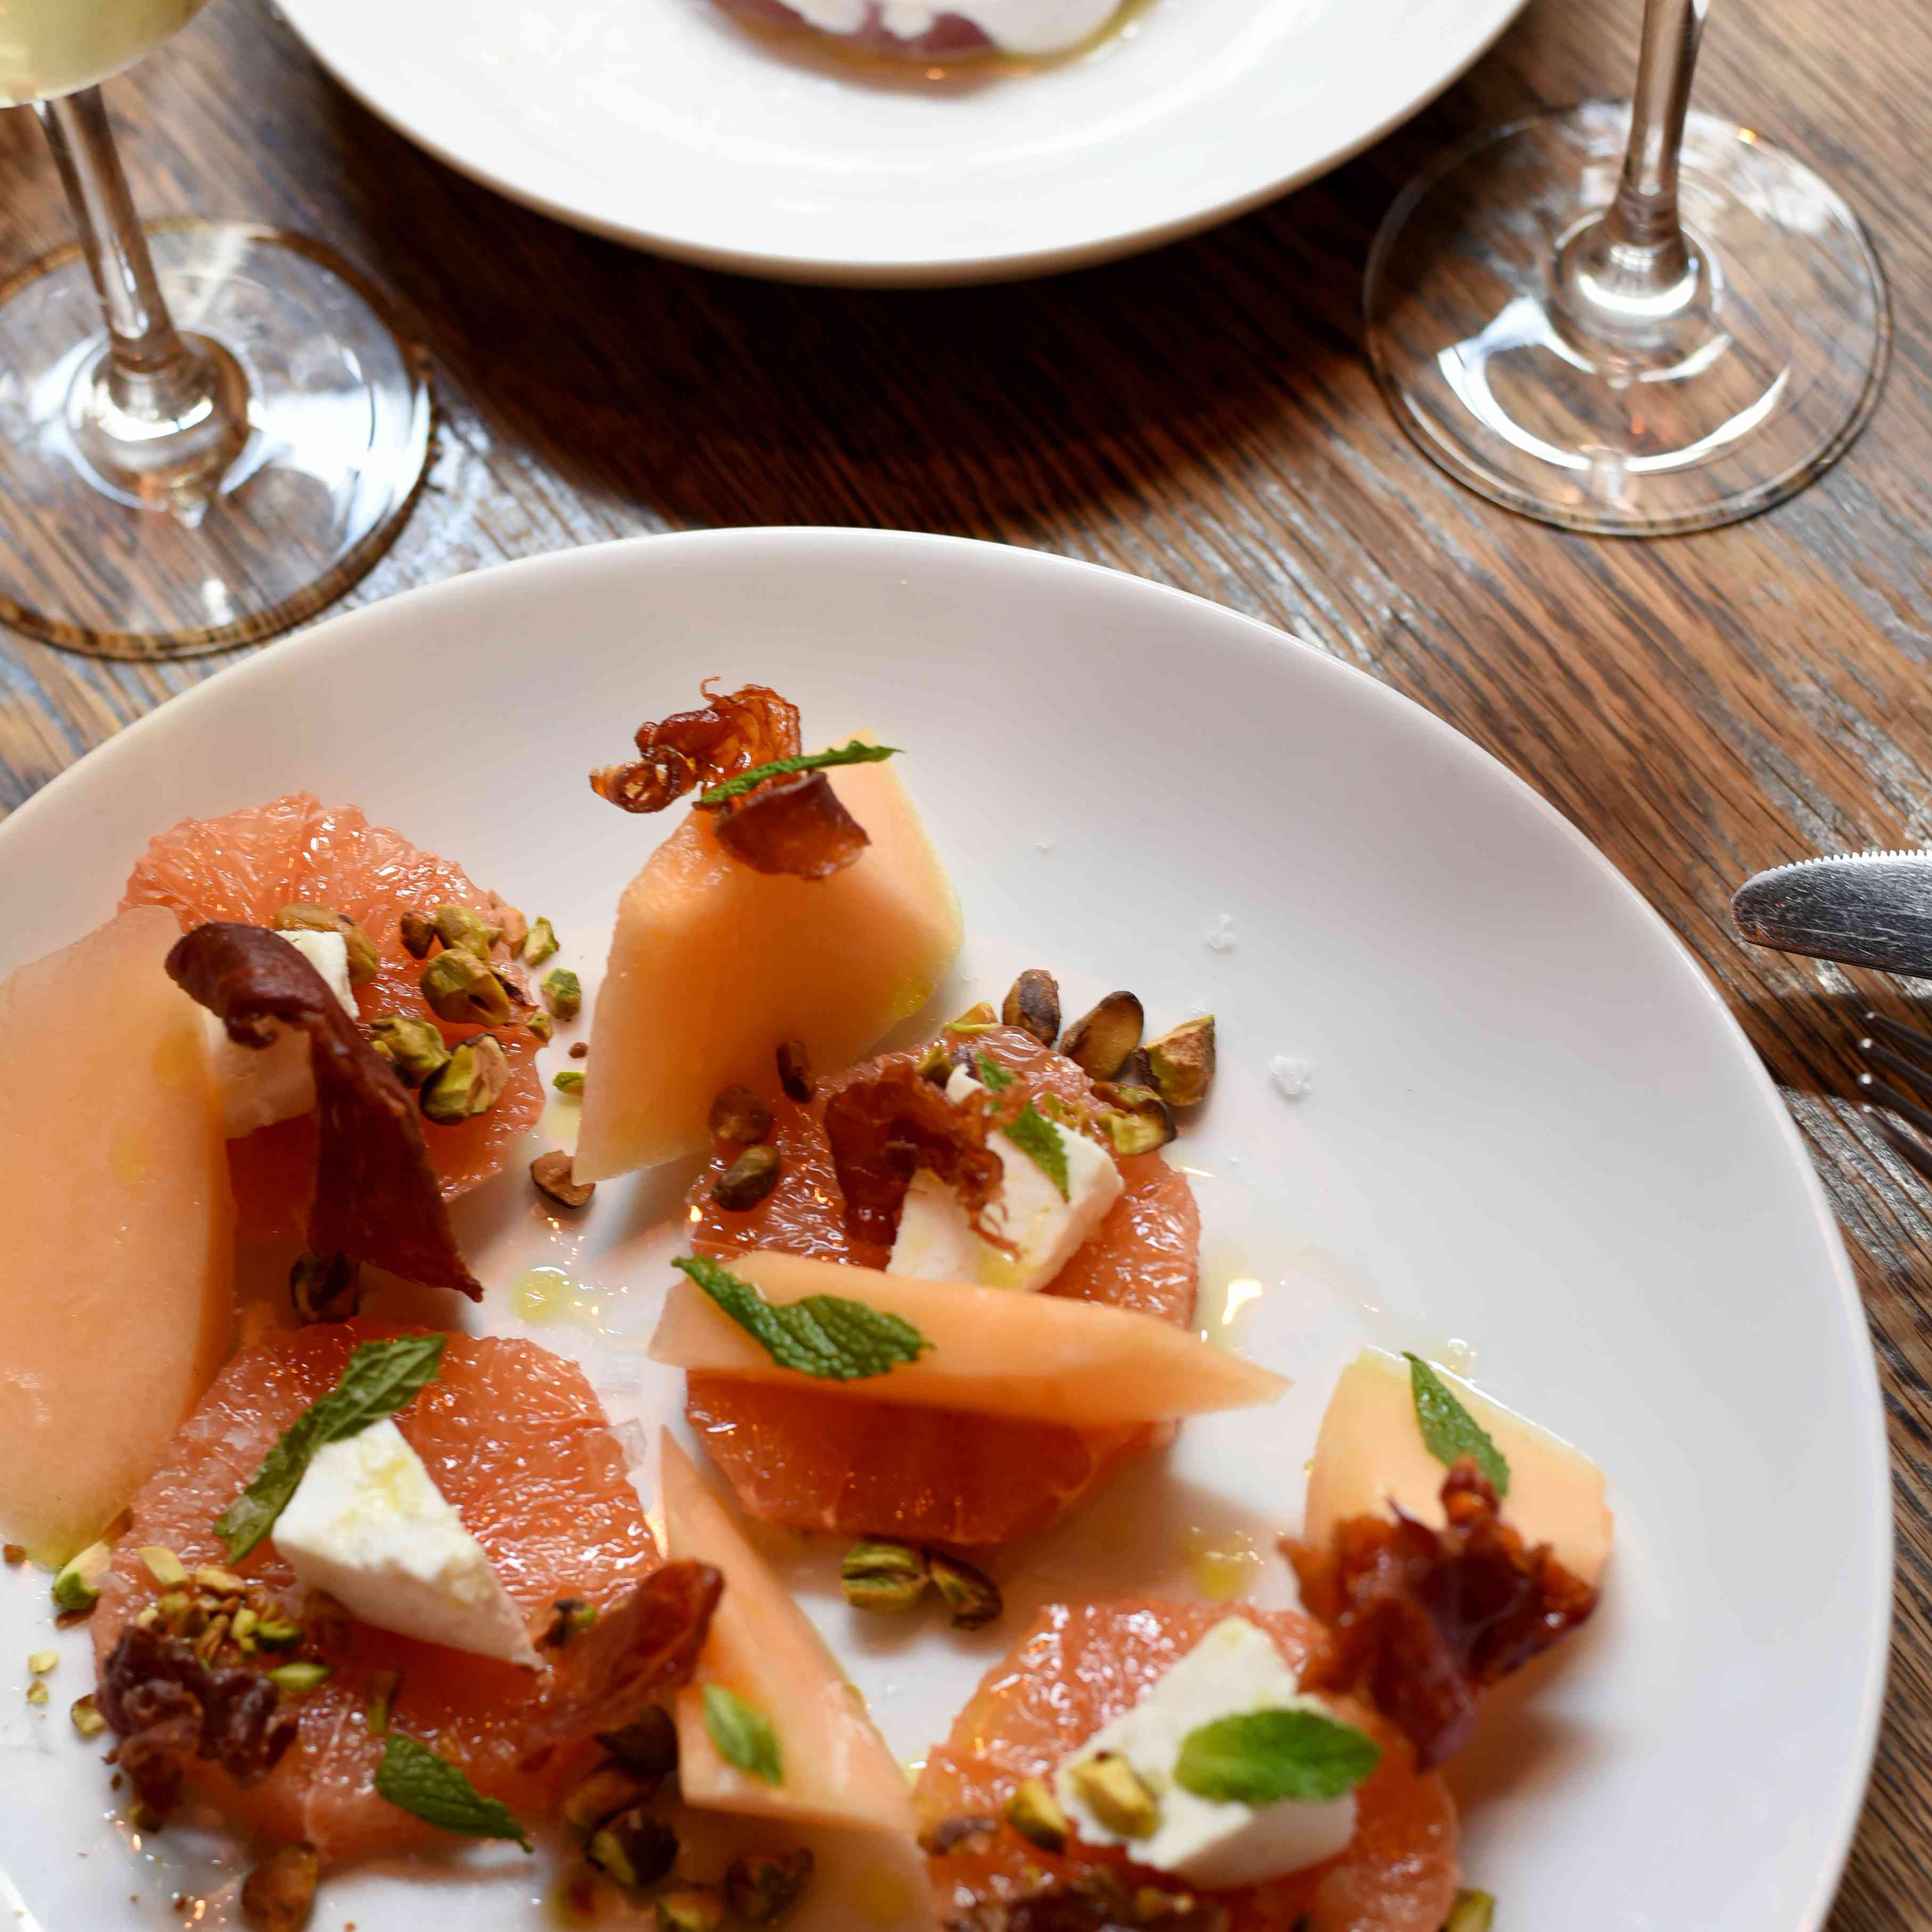 Citrus and melon with cheese and nuts